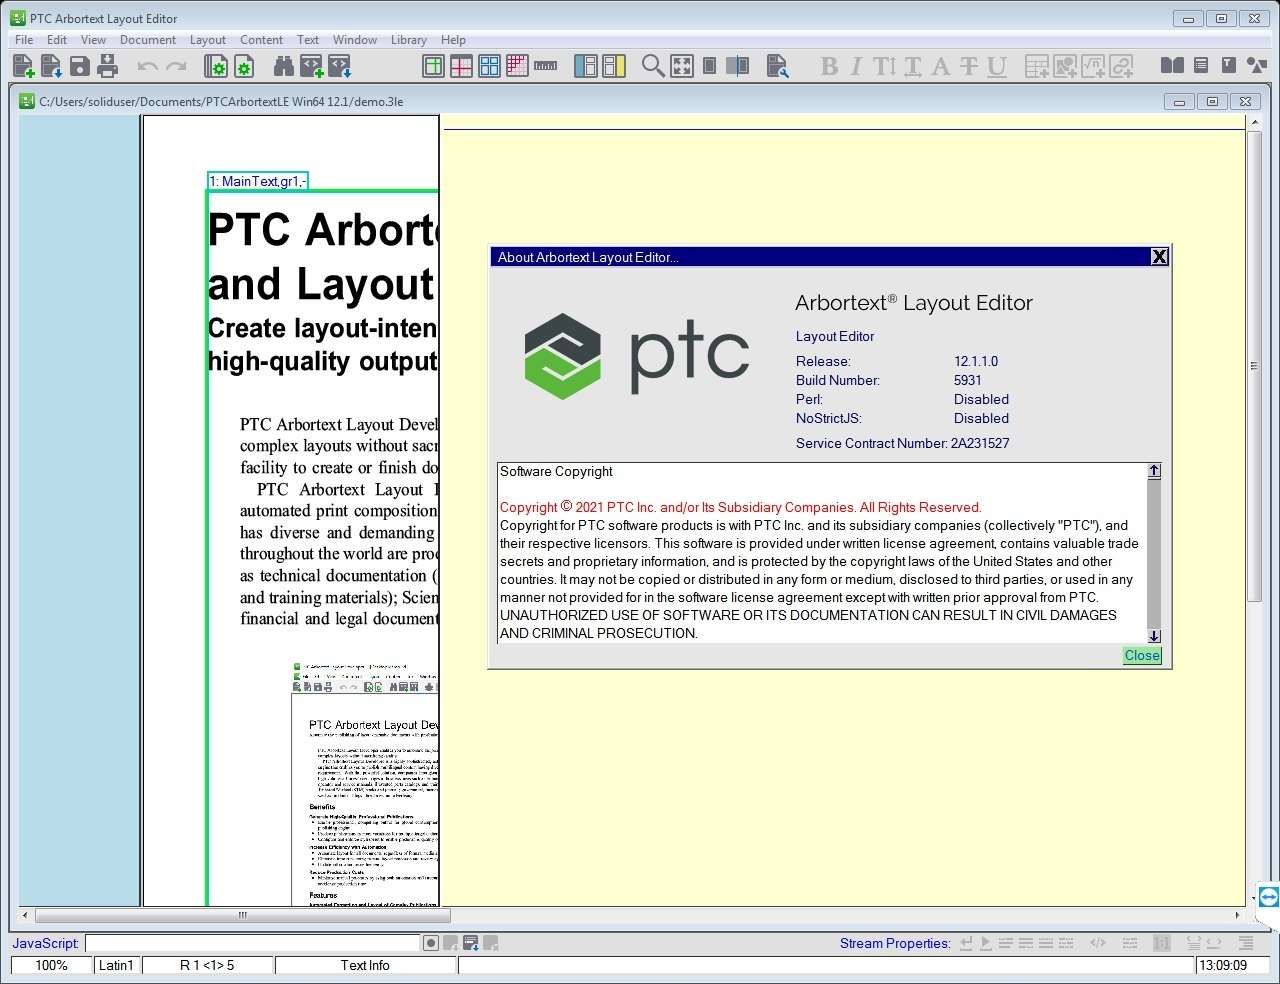 Working with PTC Arbortext Layout Editor 12.1.1.0 full